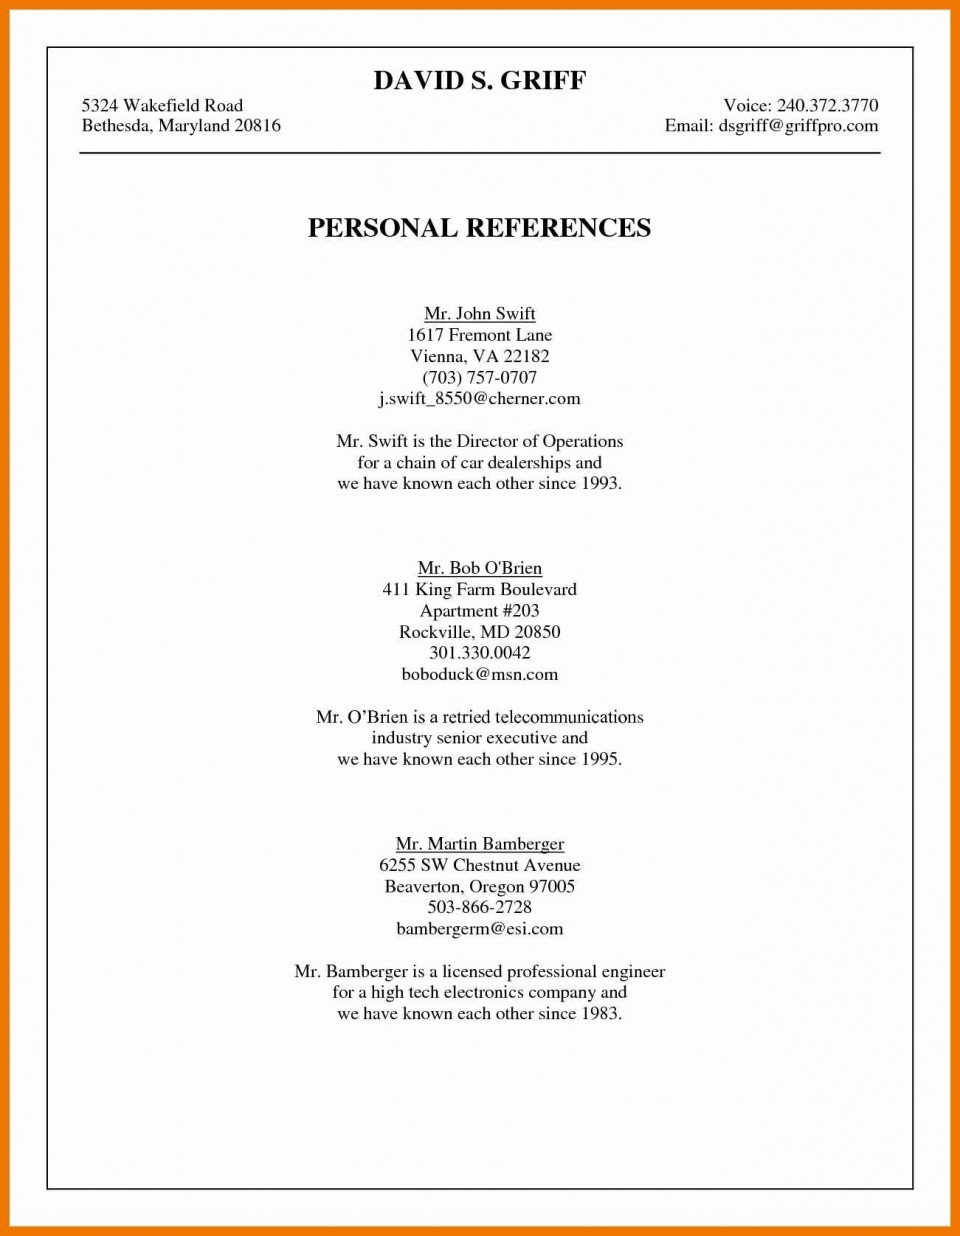 003 Phenomenal List Personal Reference Sample High Def 960